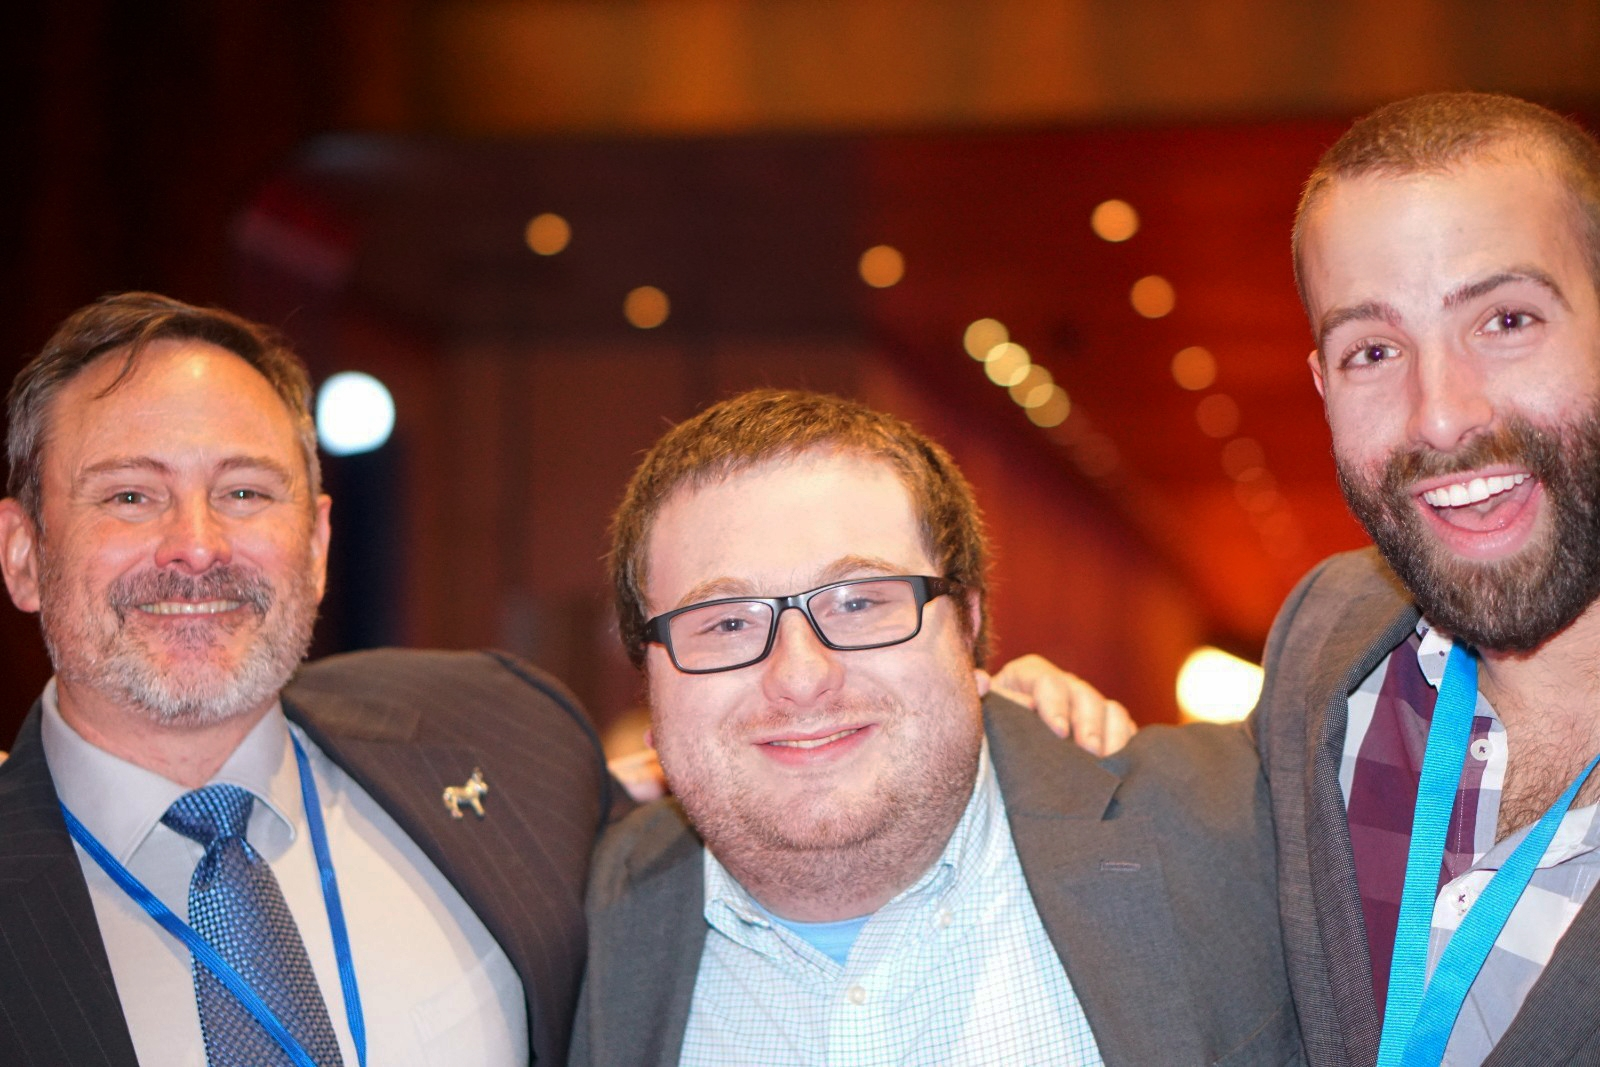 Image credit: Neil Monohan. From left to right in Atlantic City: Cranford NJ Democratic Municipal Chair John Salerno, Springfield NJ Democratic Vice Chair Harris Laufer, Activate Media CEO Dave Pilmenstein